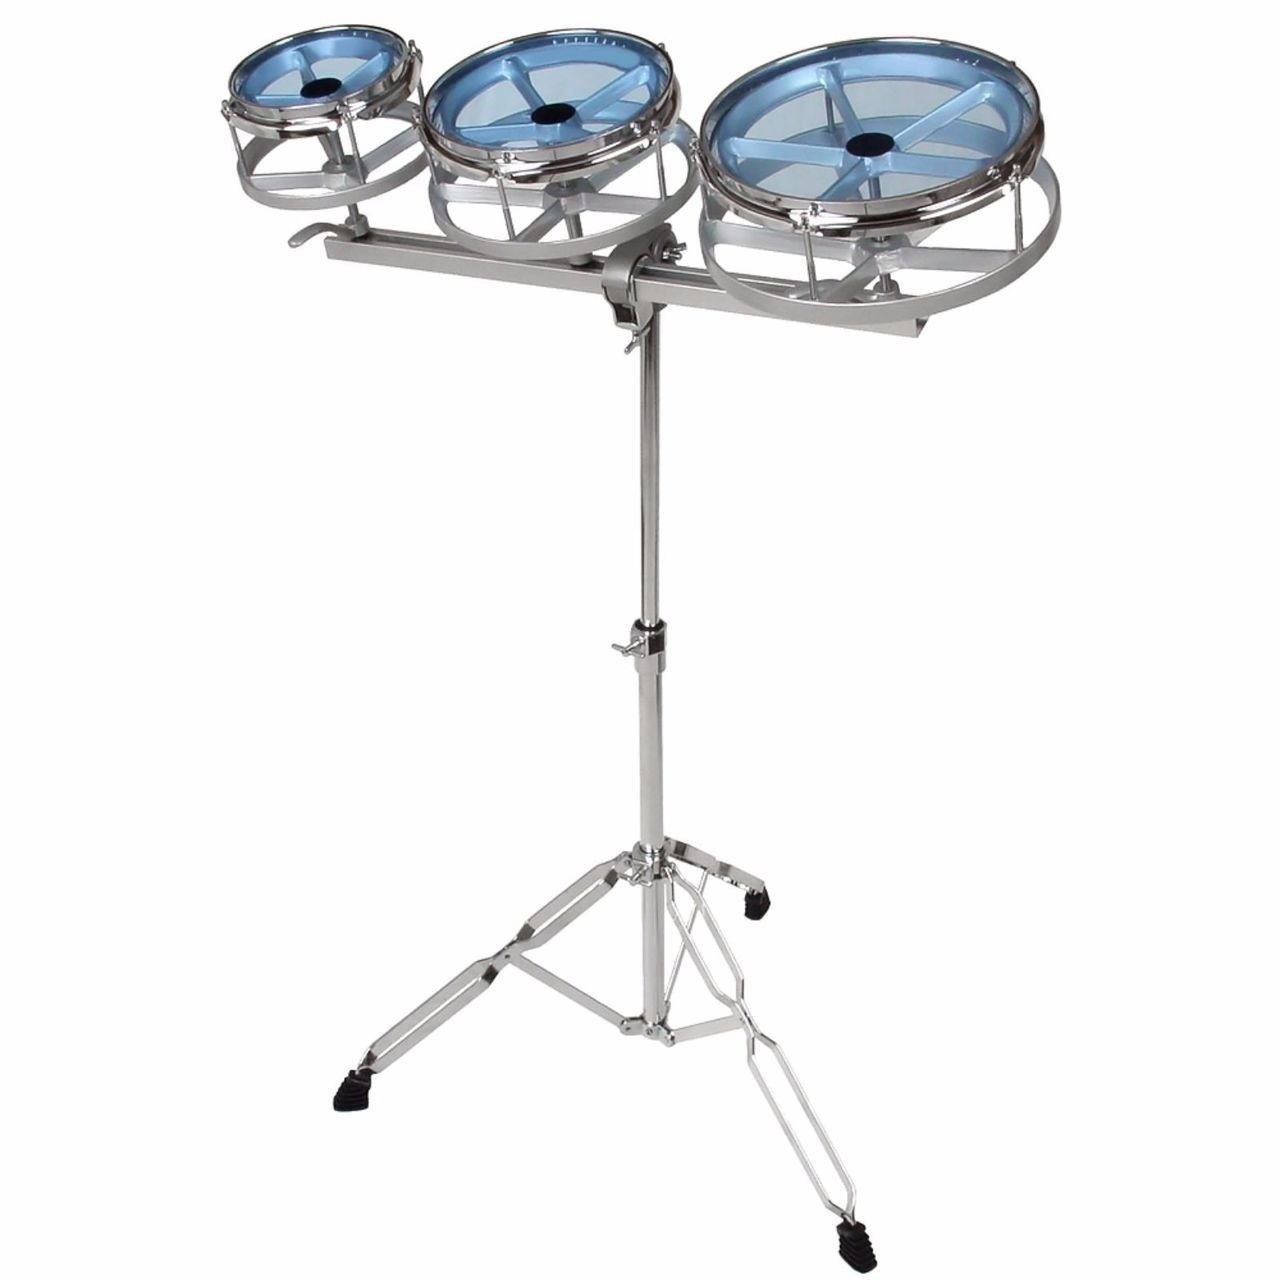 GP Percussion RT68 Tunable Roto Tom Drum Set with Adjustable Double Braced Floor Stand, Adjustable Track, Plated Counterhoop, Drum Key, and Drumsticks - Quick Pitch Shift Drums